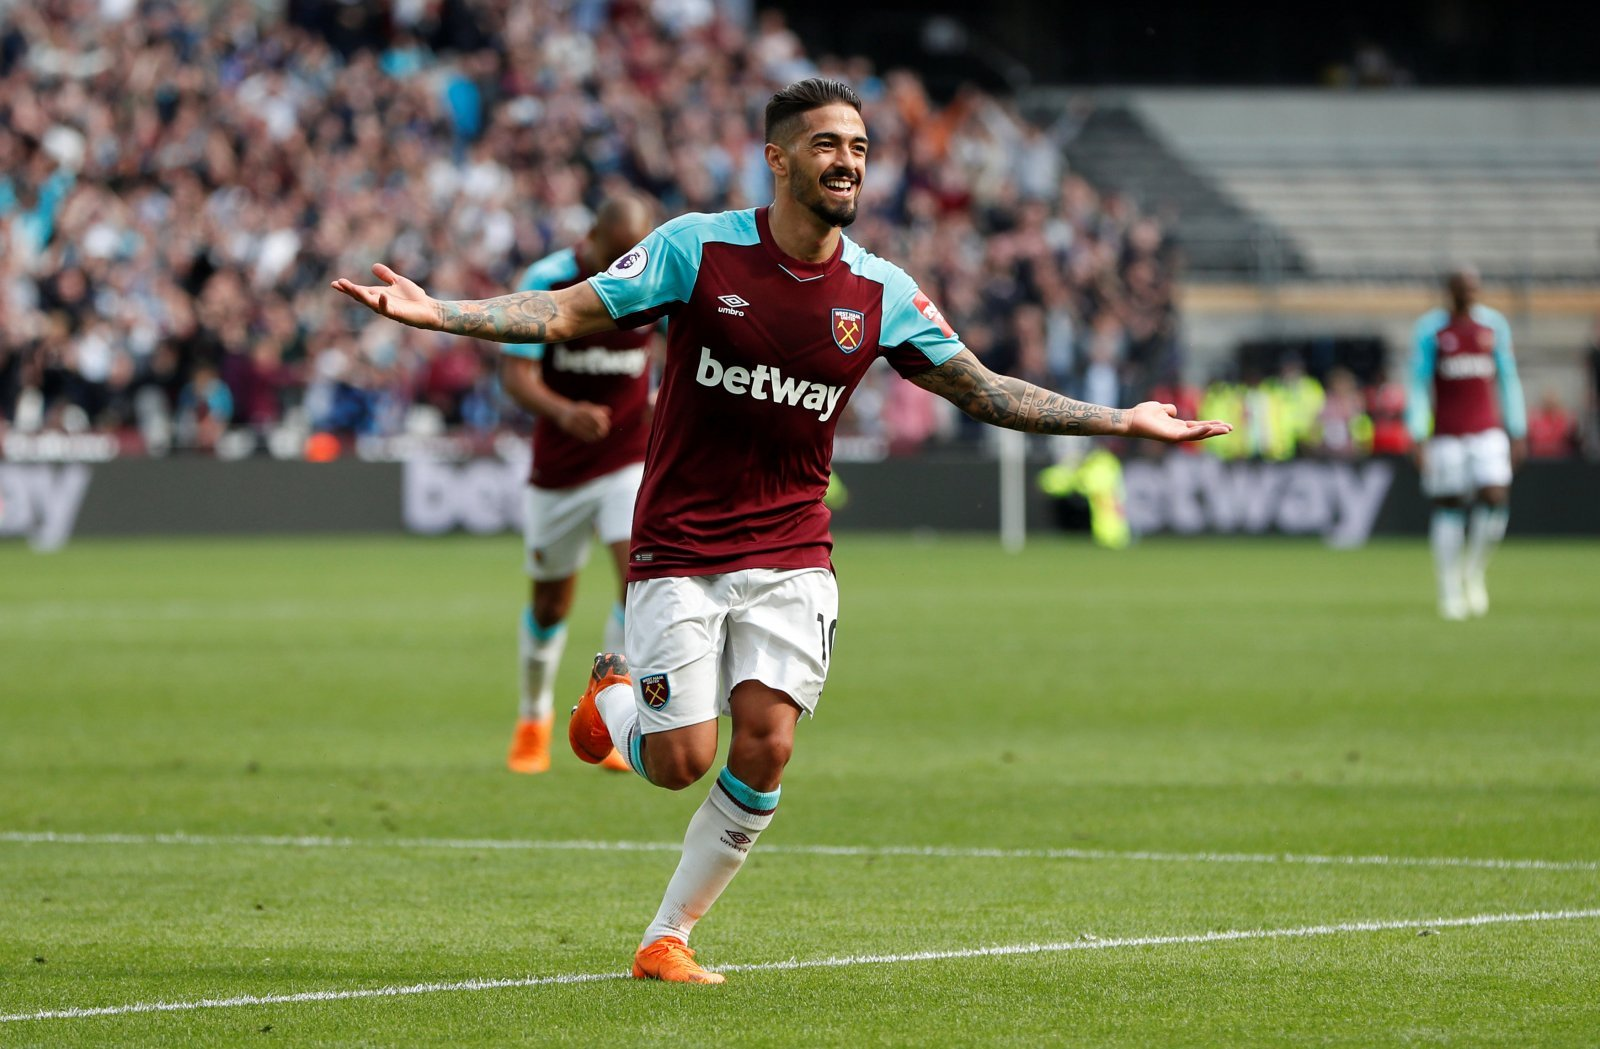 Dack could be wasted at West Ham upon Lanzini return